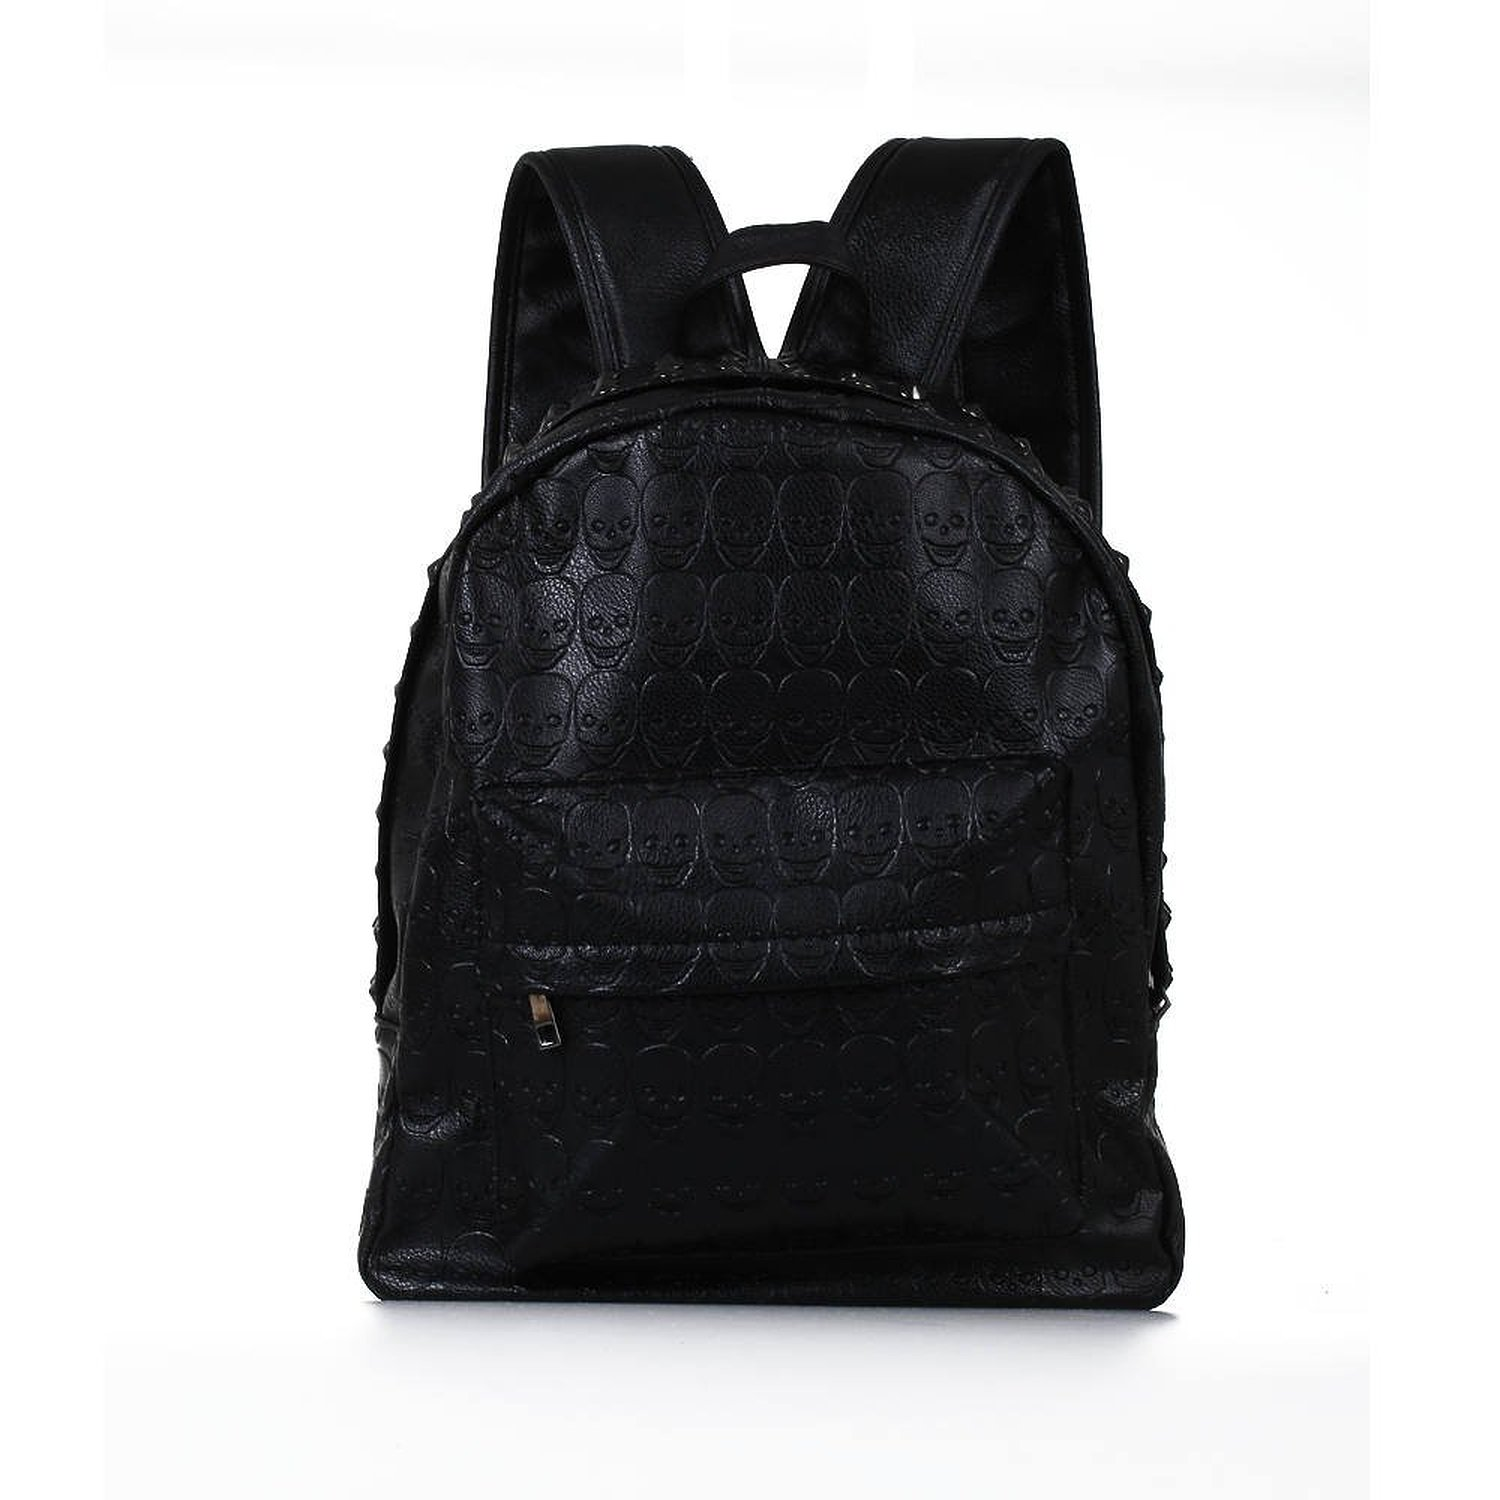 Wholesale 10*Backpack Bag Rivet PU Skull Womens Black Women GirlWholesale 10*Backpack Bag Rivet PU Skull Womens Black Women Girl